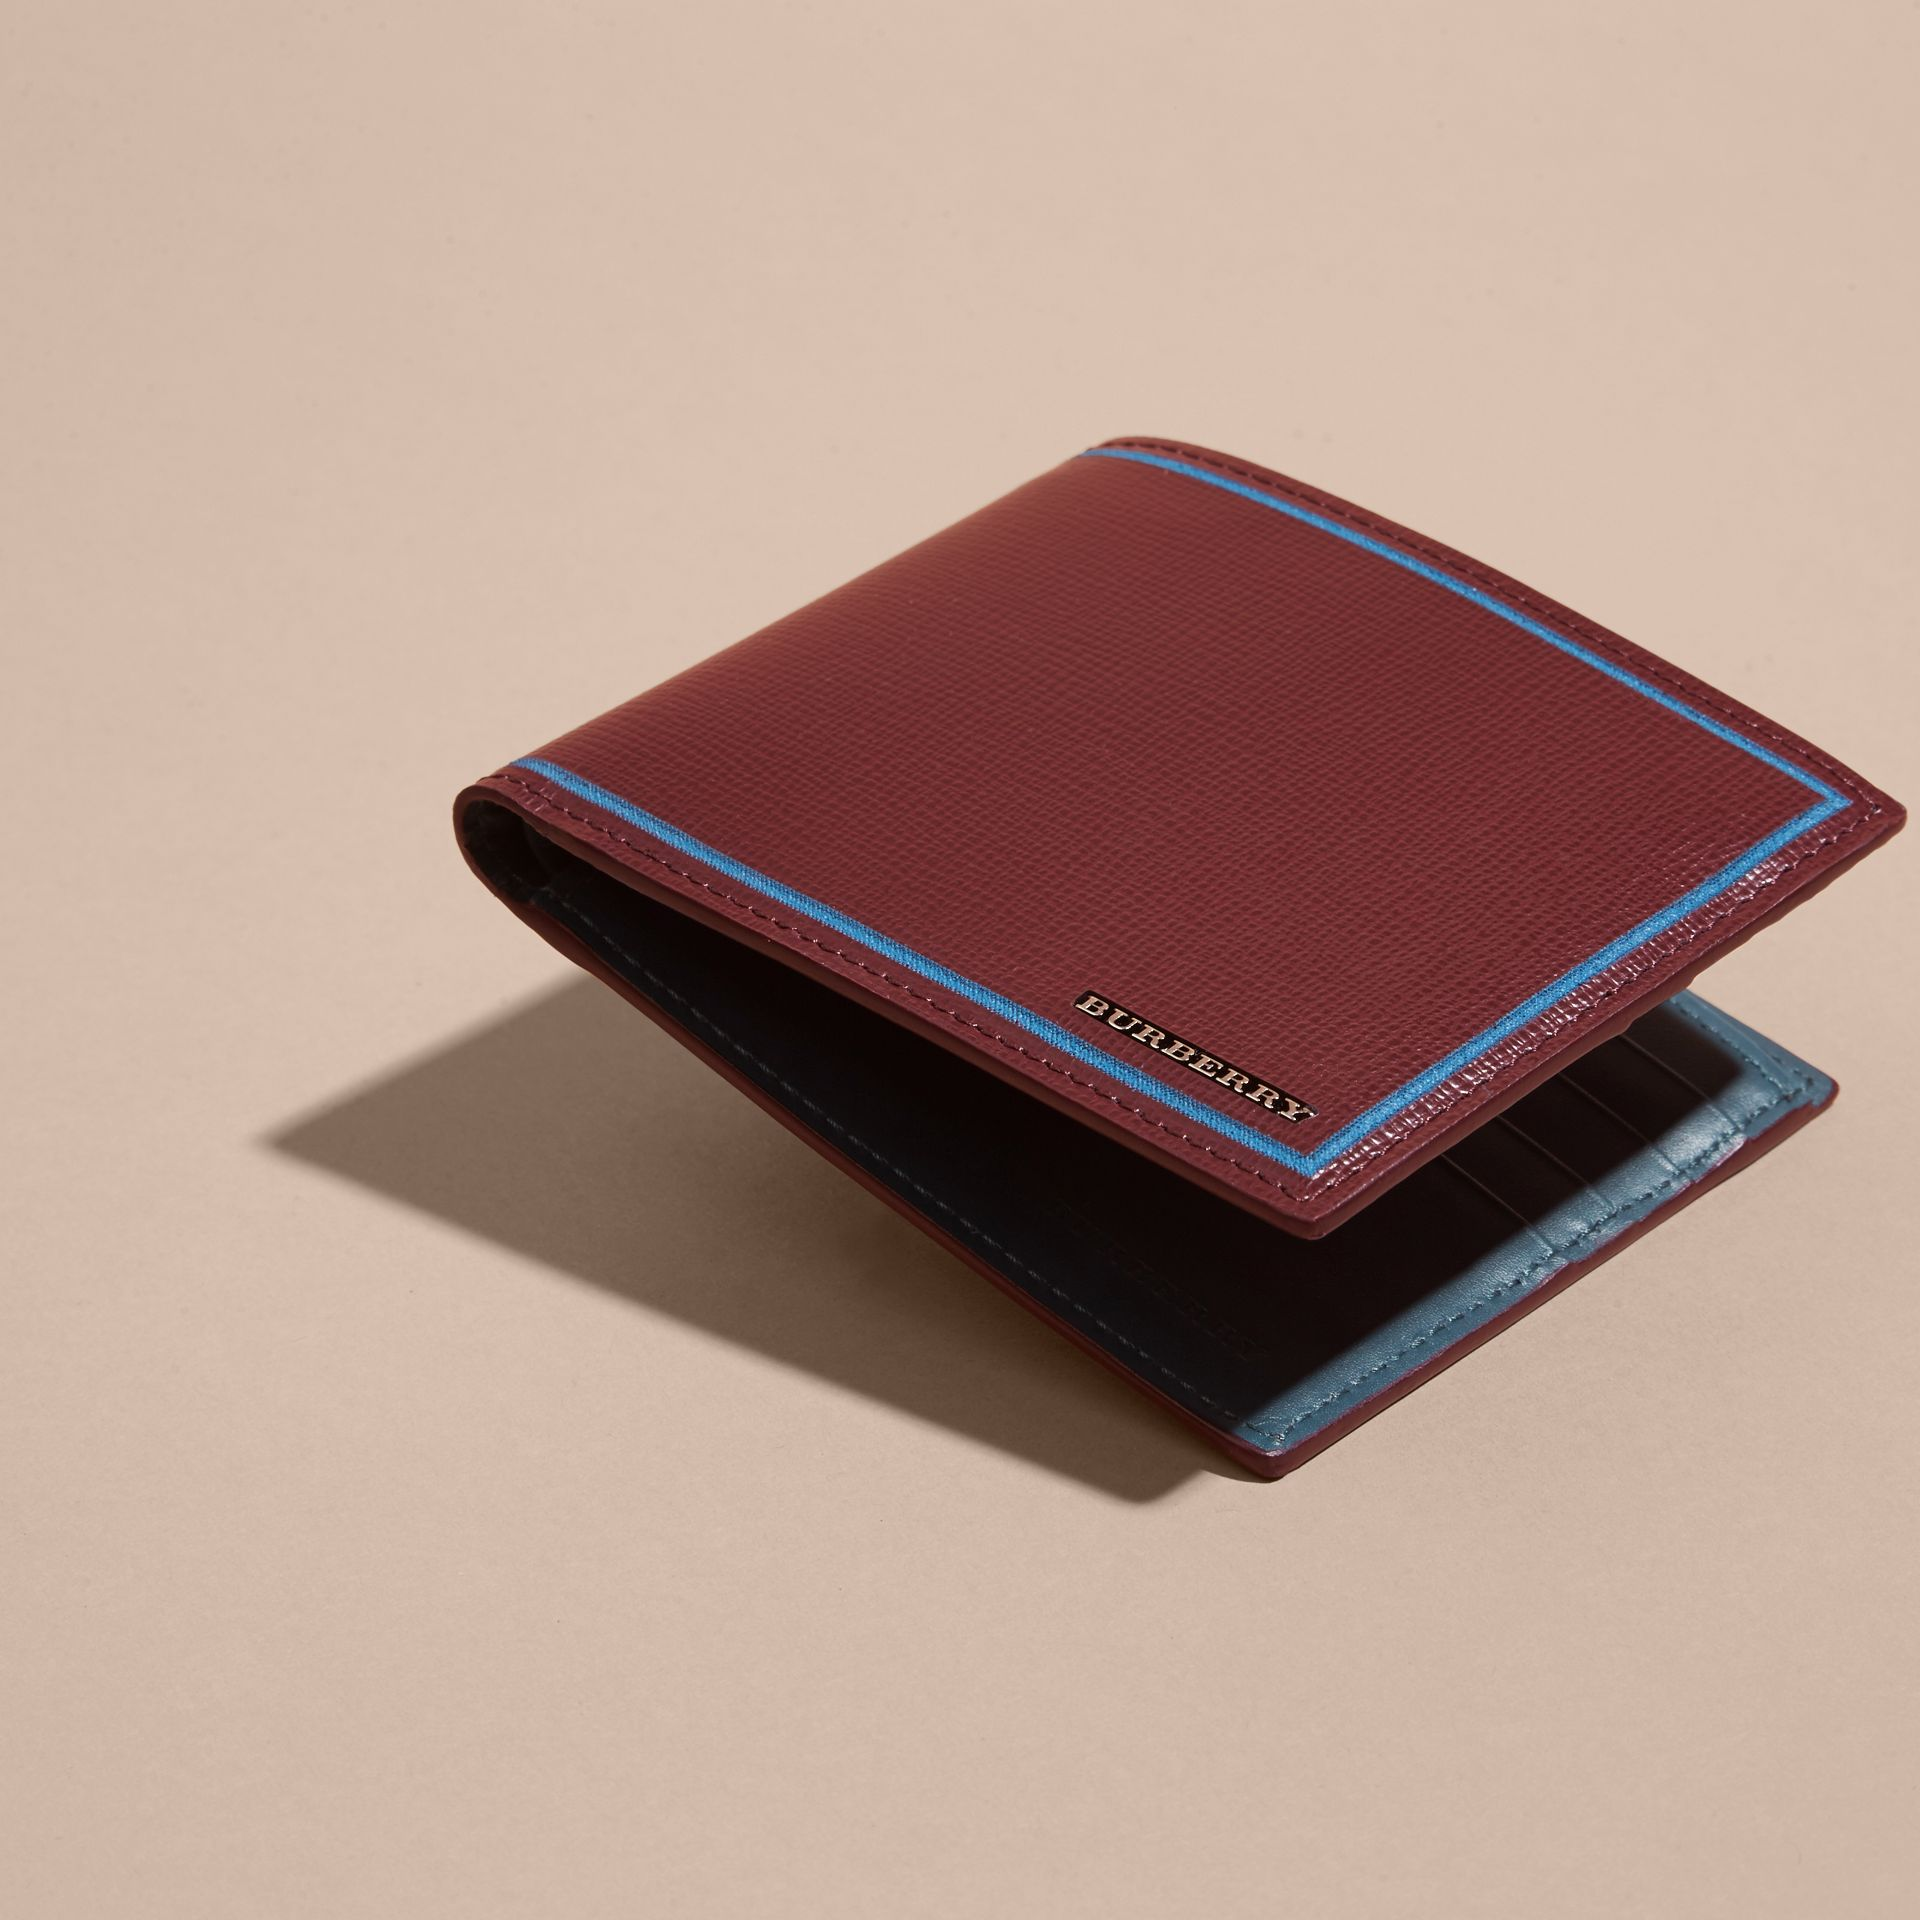 Border Detail London Leather Folding Wallet Burgundy Red - gallery image 4